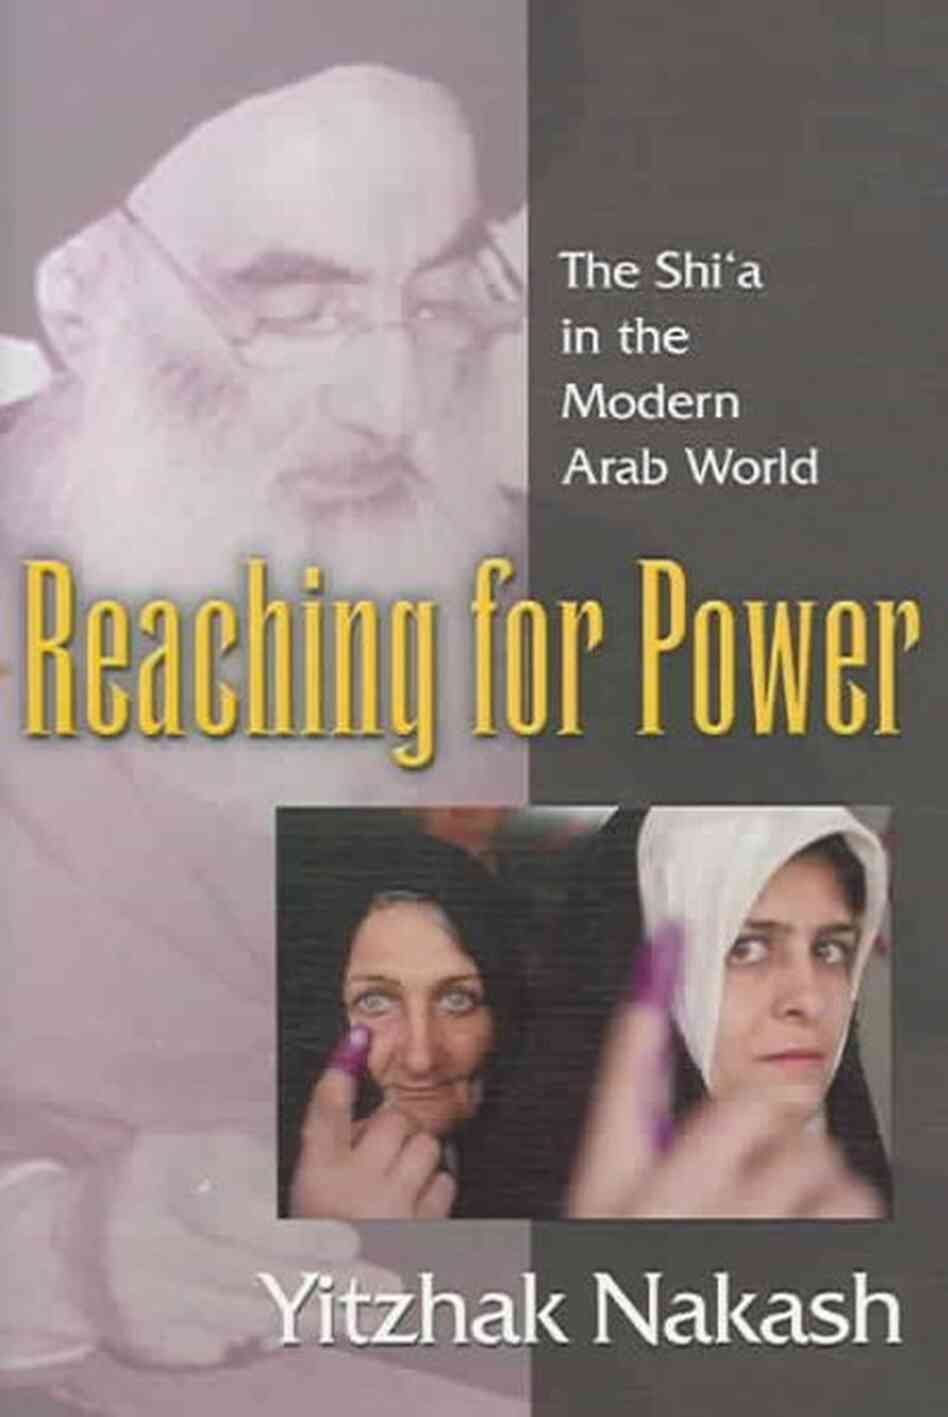 Reaching for Power